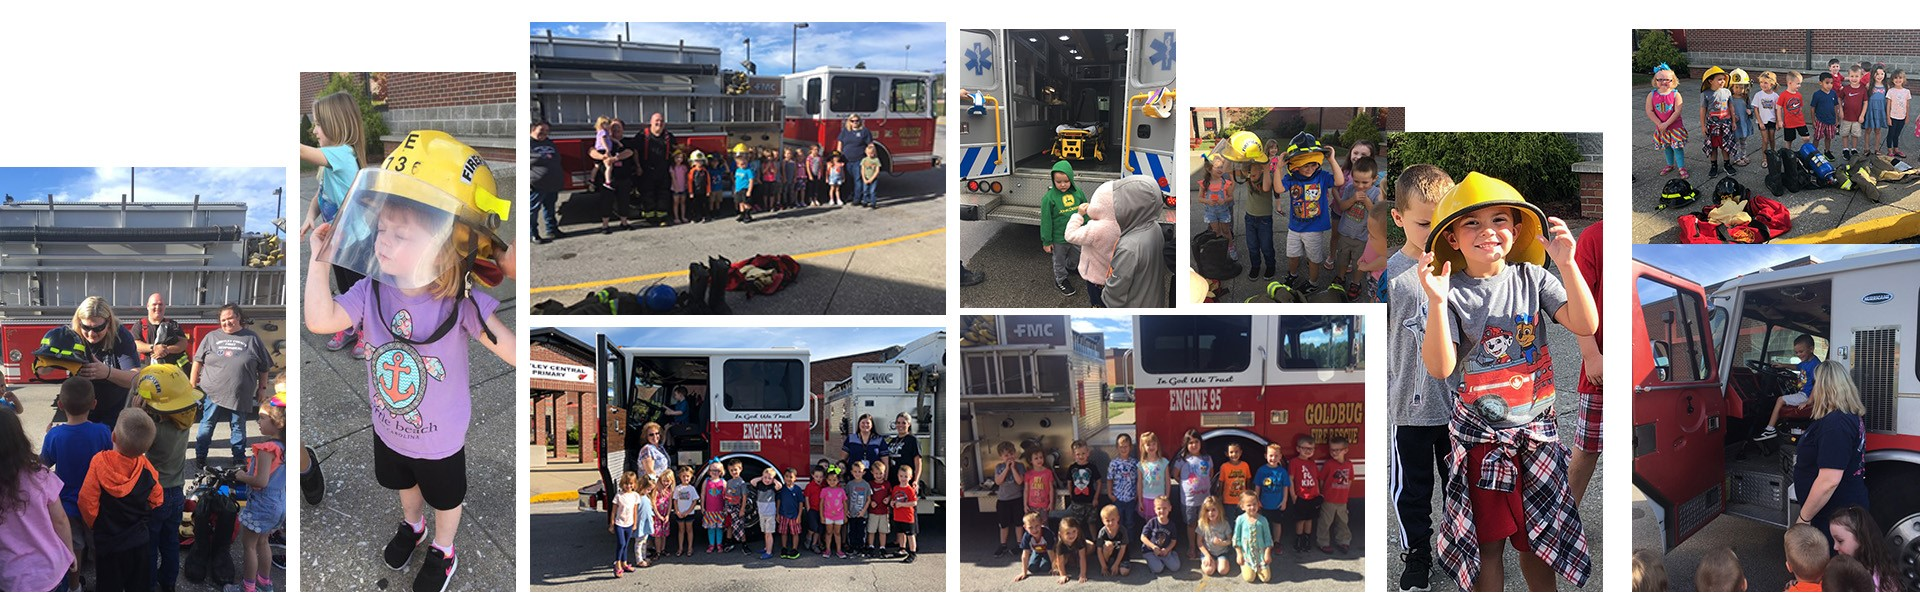 Whitley Central Primary students with Goldbug Fire Department